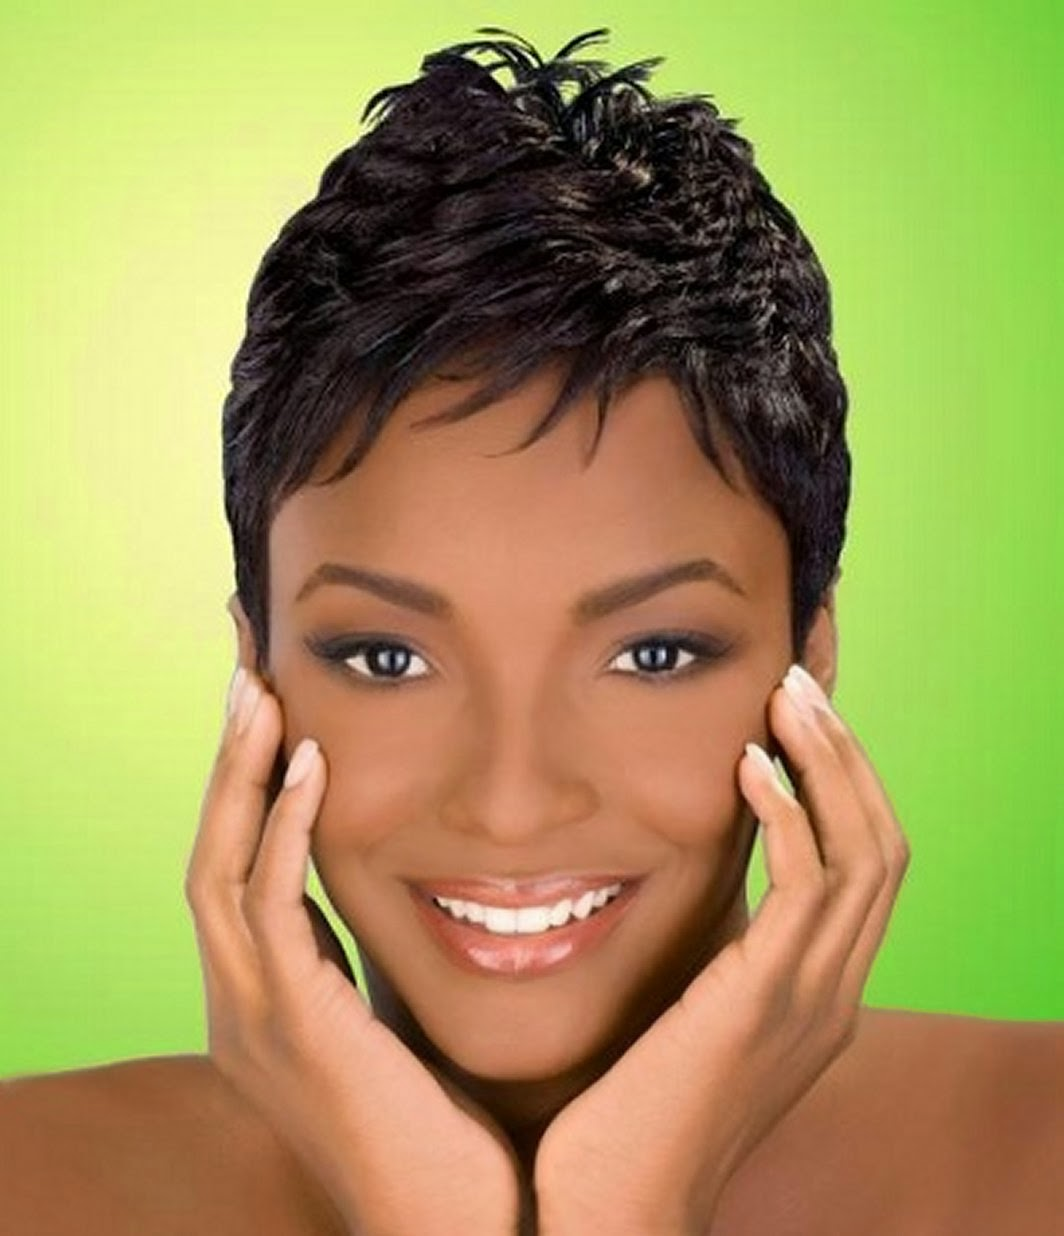 Sensational Good Short Hairstyles For African American Women Short Hairstyles For Black Women Fulllsitofus